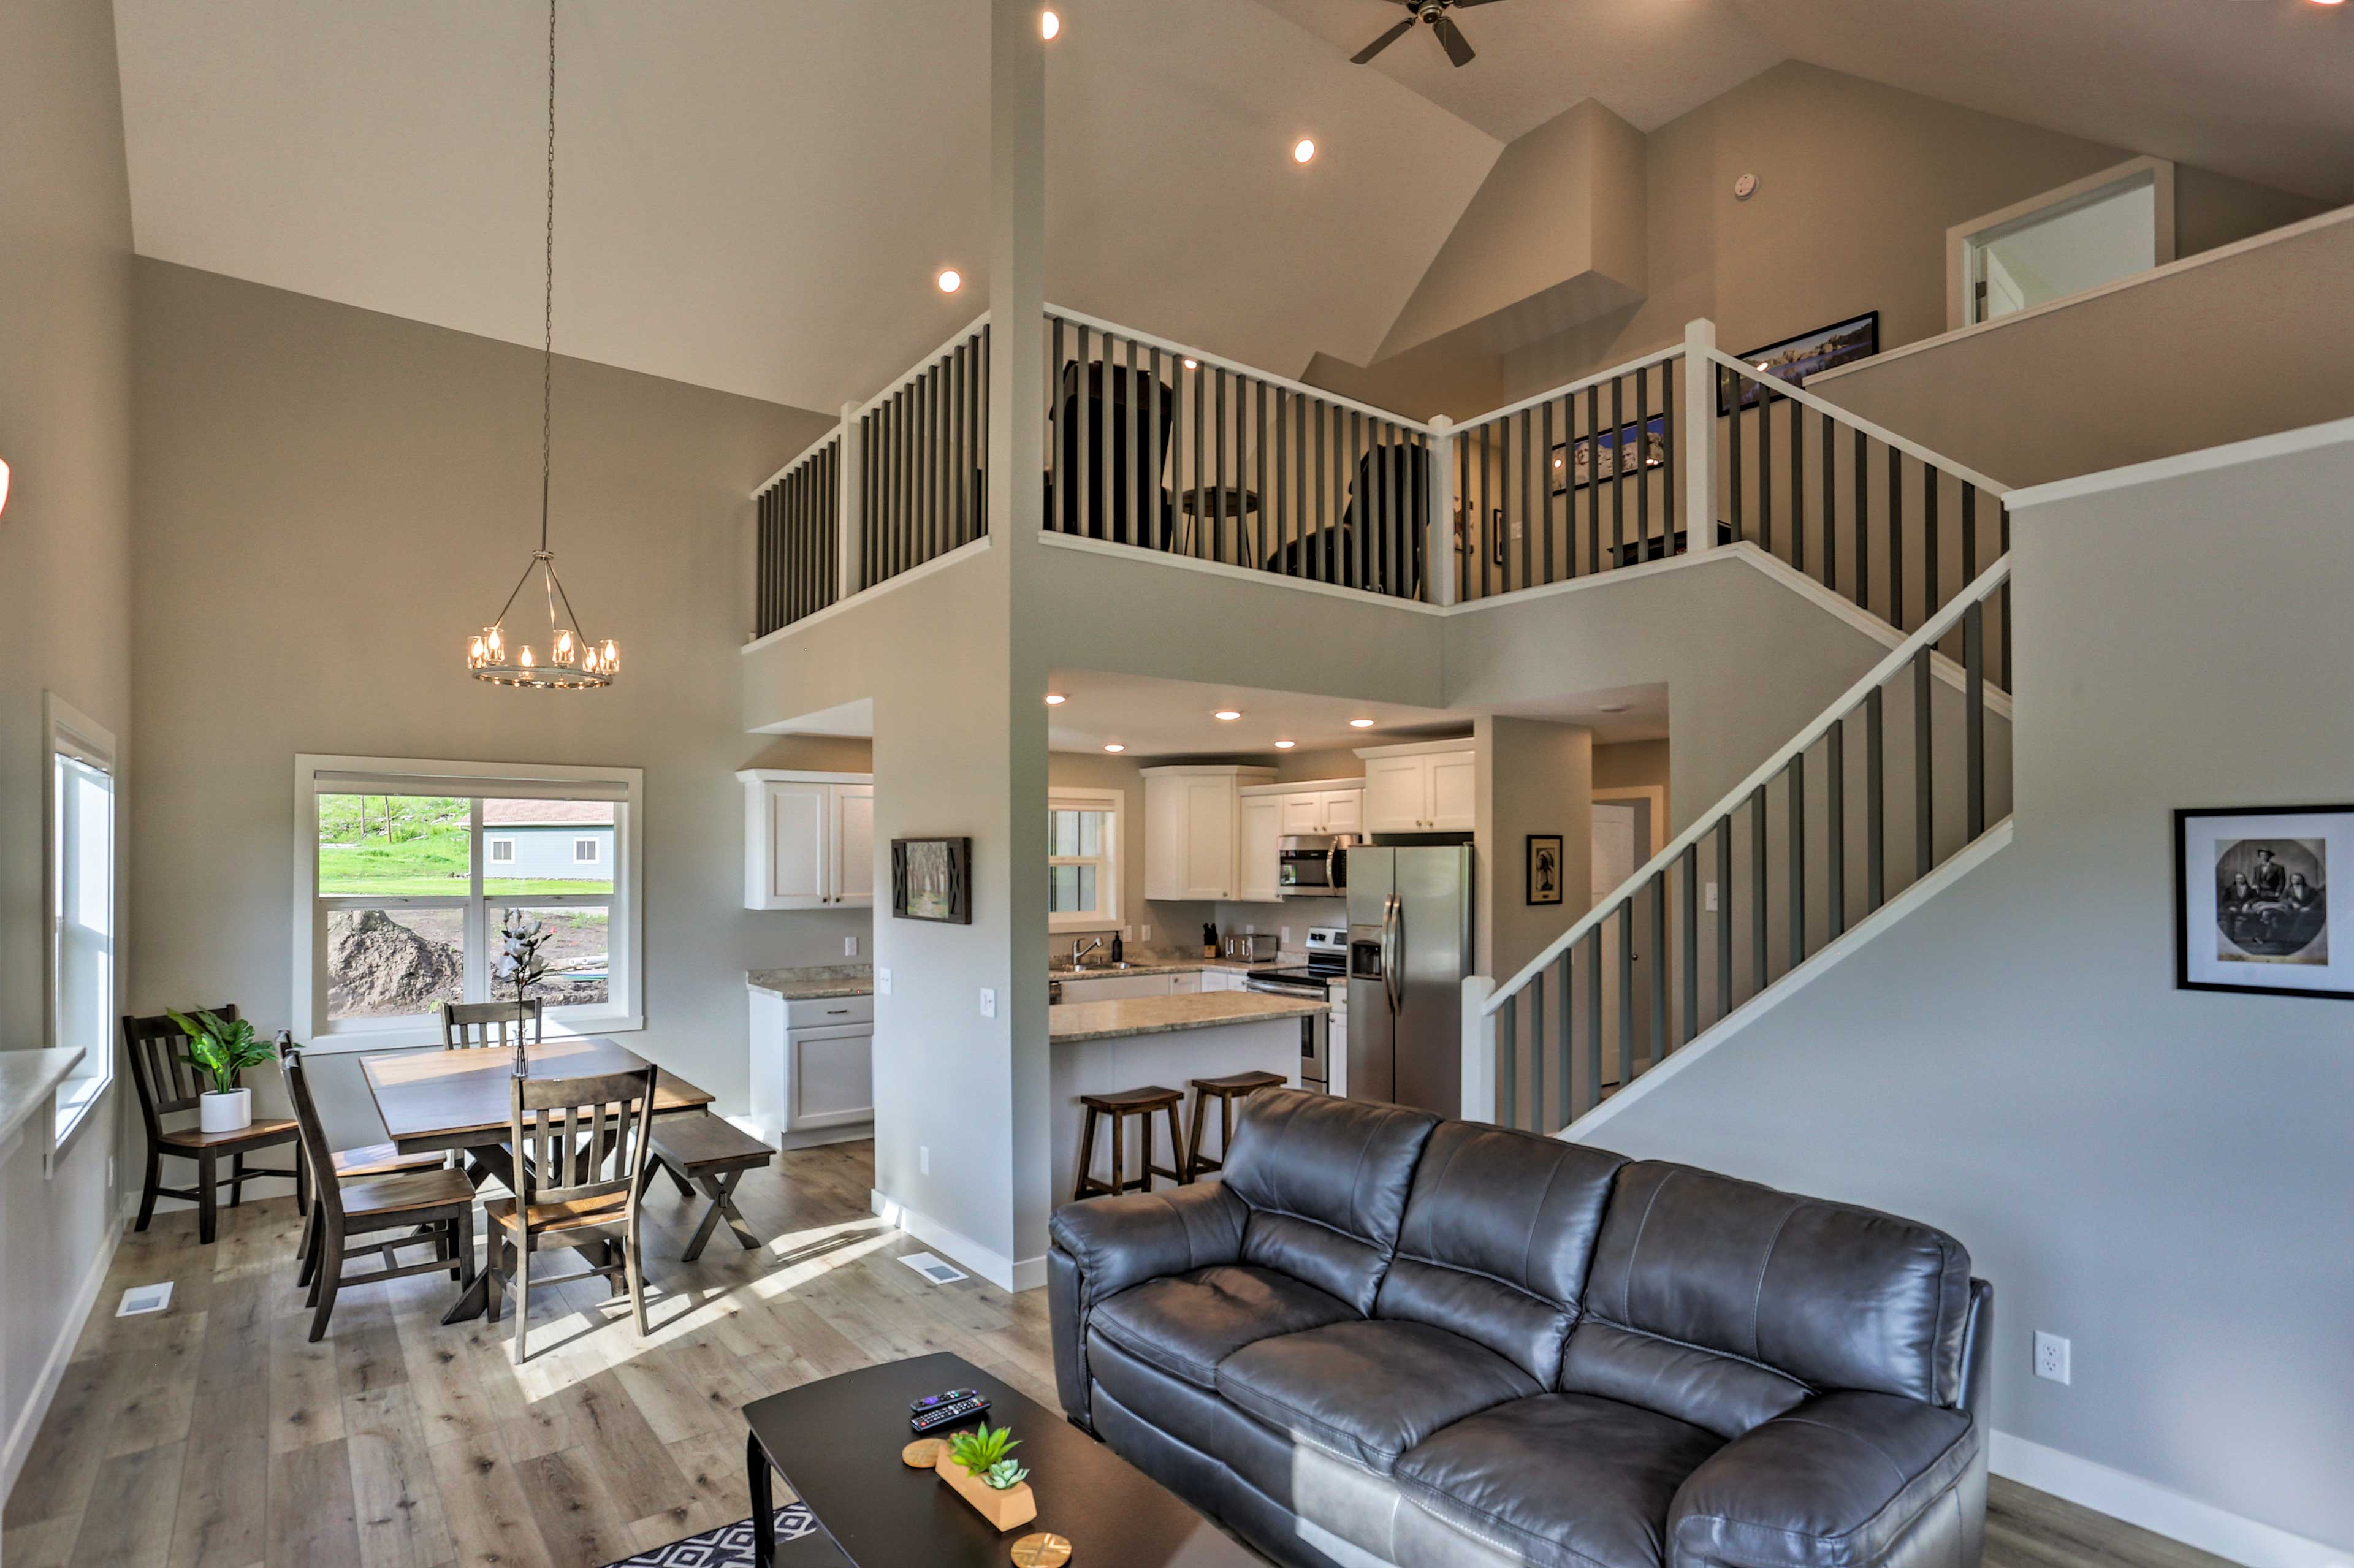 Up to 10 guests can enjoy all the modern comforts as they explore the Black Hills